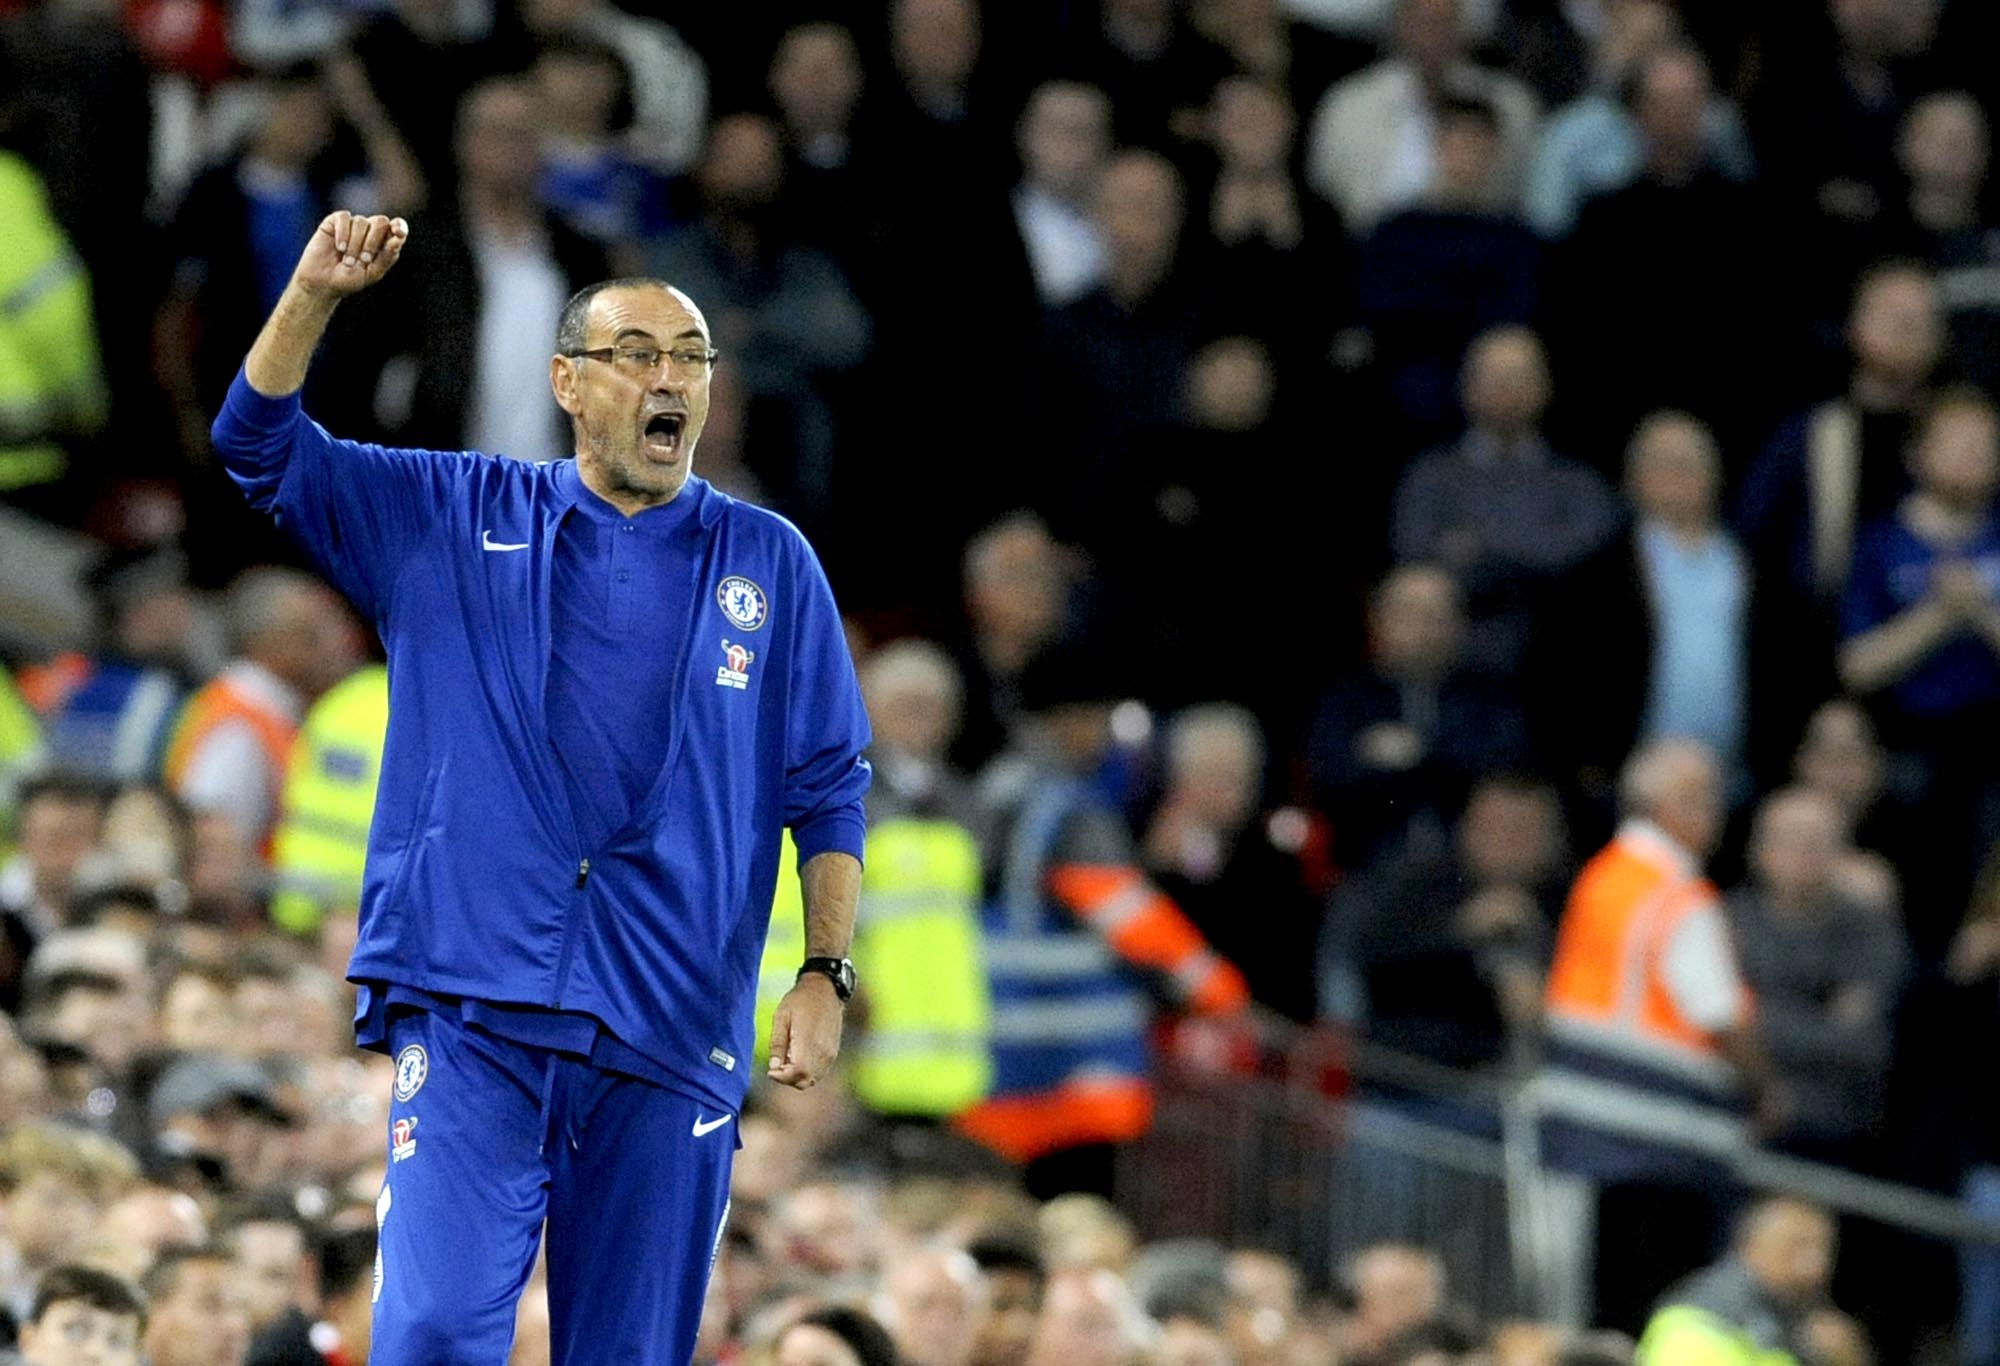 Chelsea manager Maurizio Sarri shouting from the sidelines.